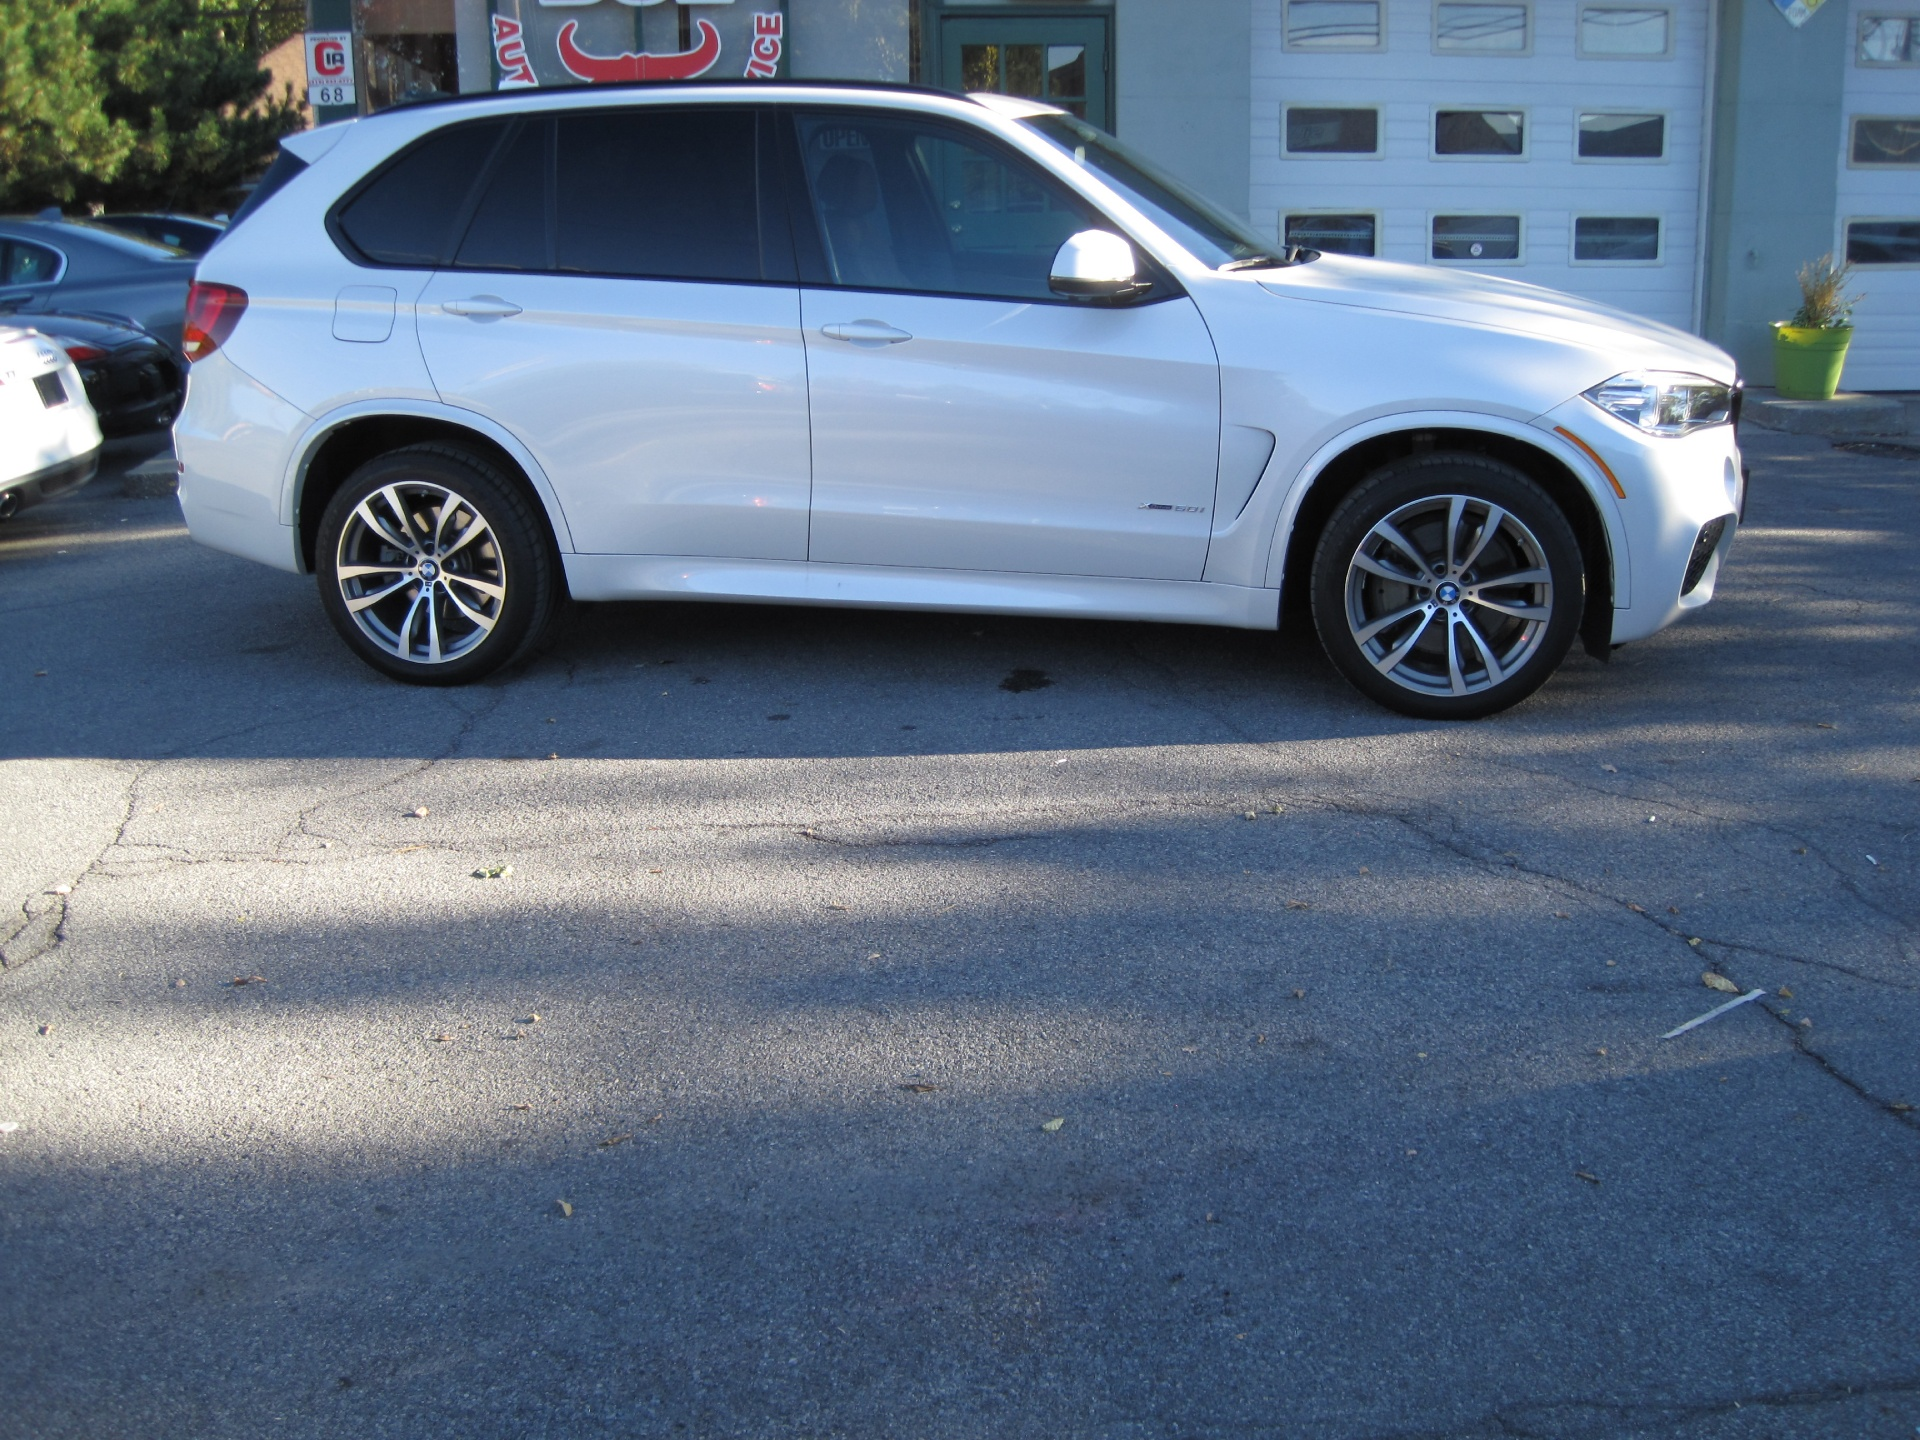 2015 bmw x5 xdrive50i awd msport loaded msrp was 80 000 stock 15149 for sale near albany ny. Black Bedroom Furniture Sets. Home Design Ideas